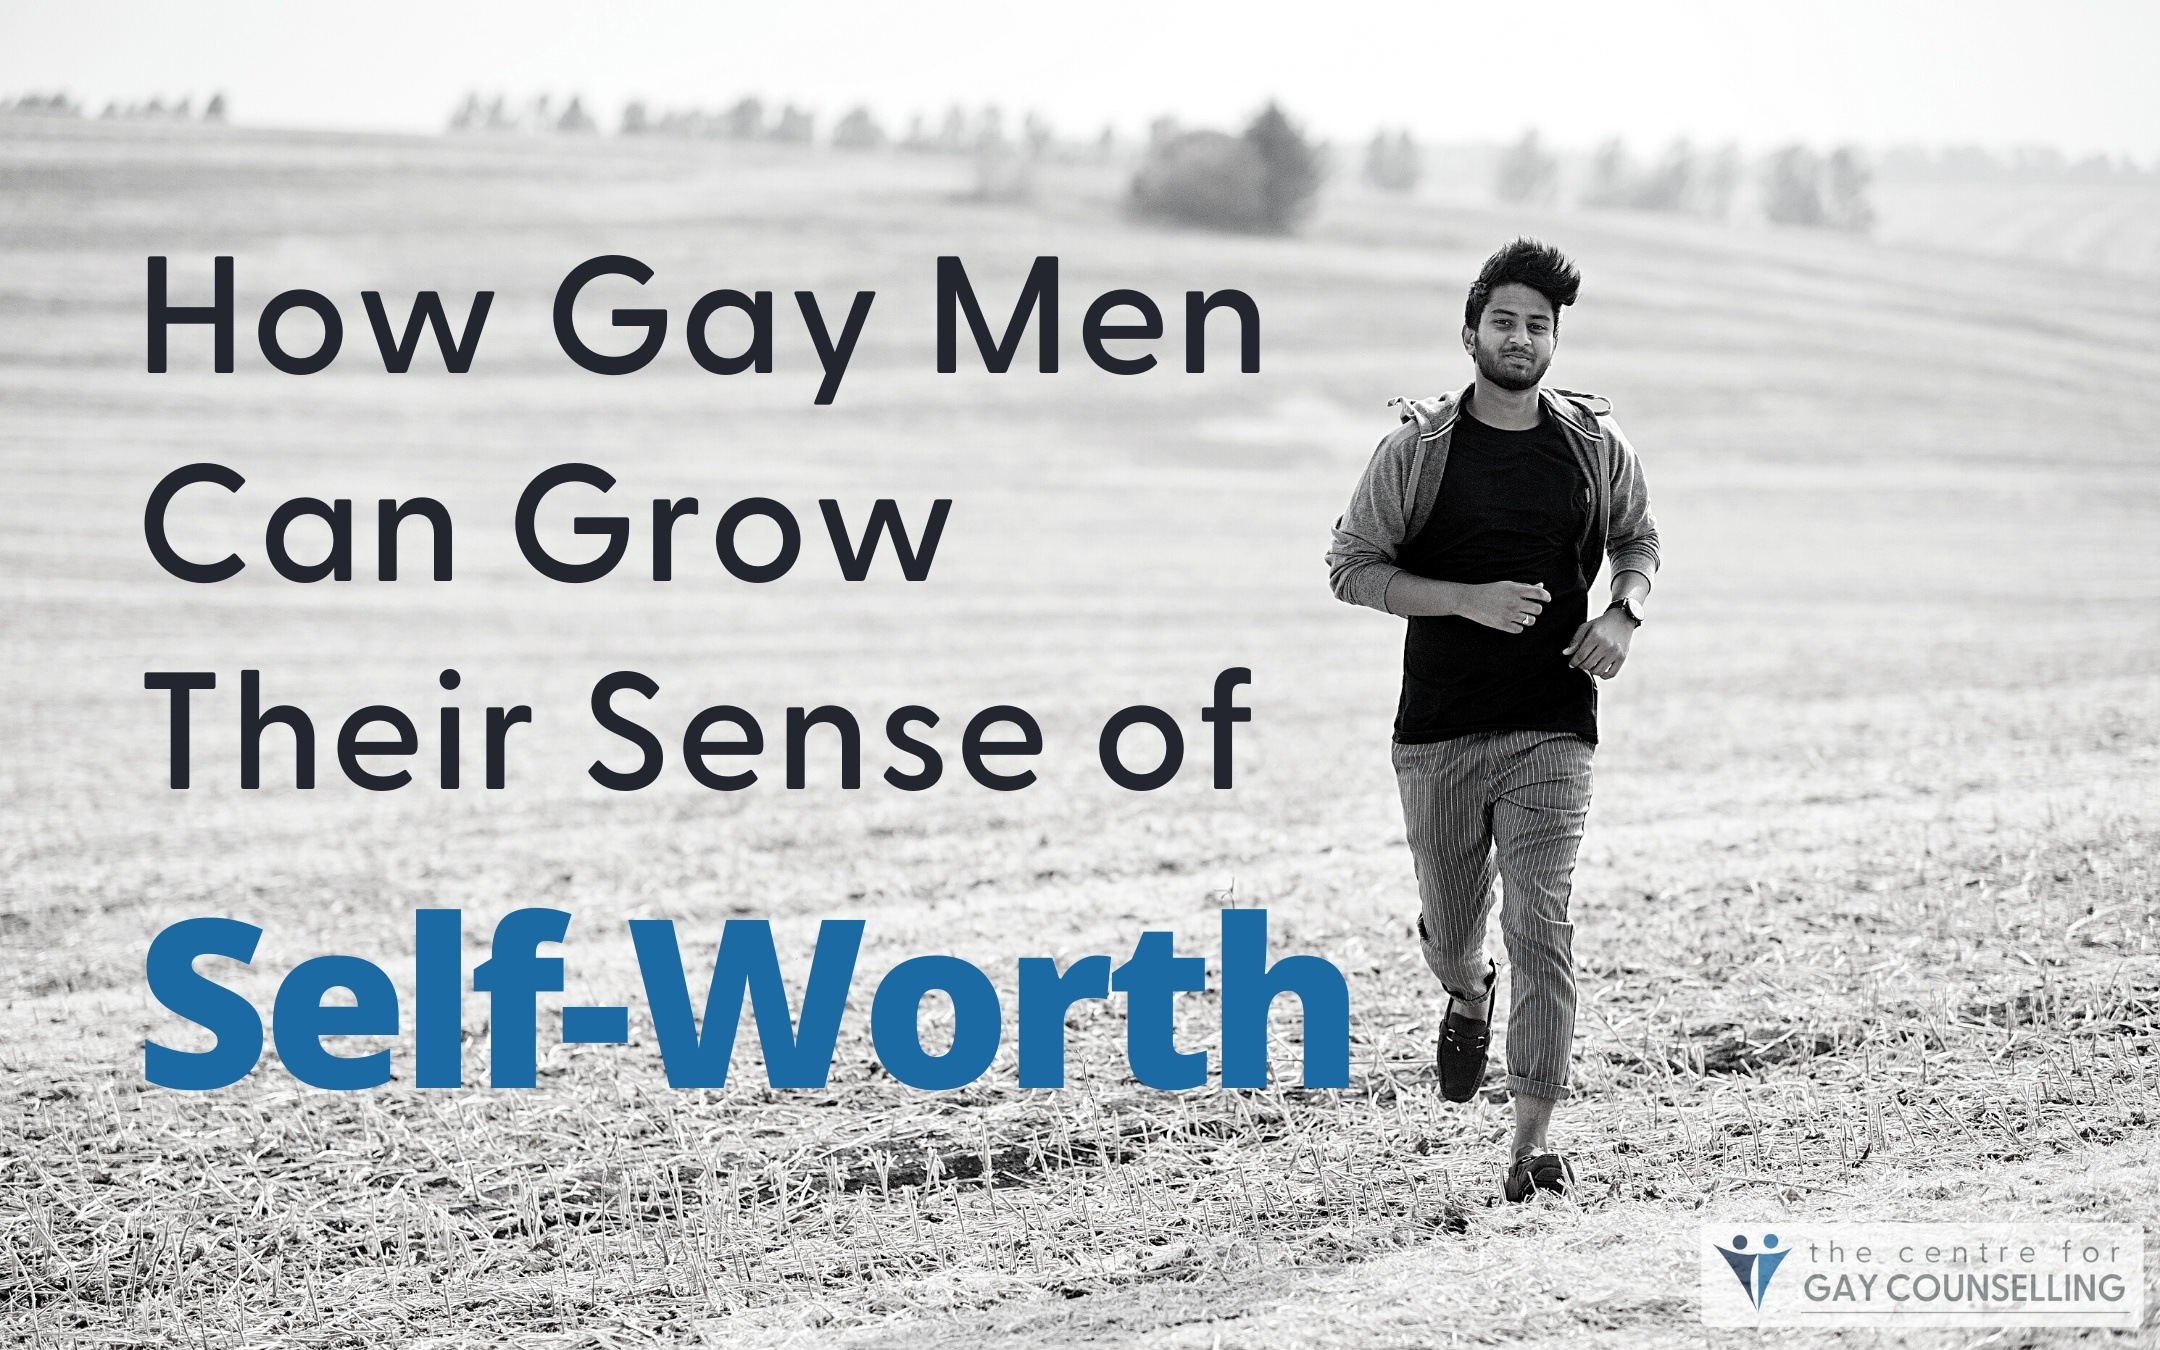 gay men self-worth Canada counselling therapy mental health